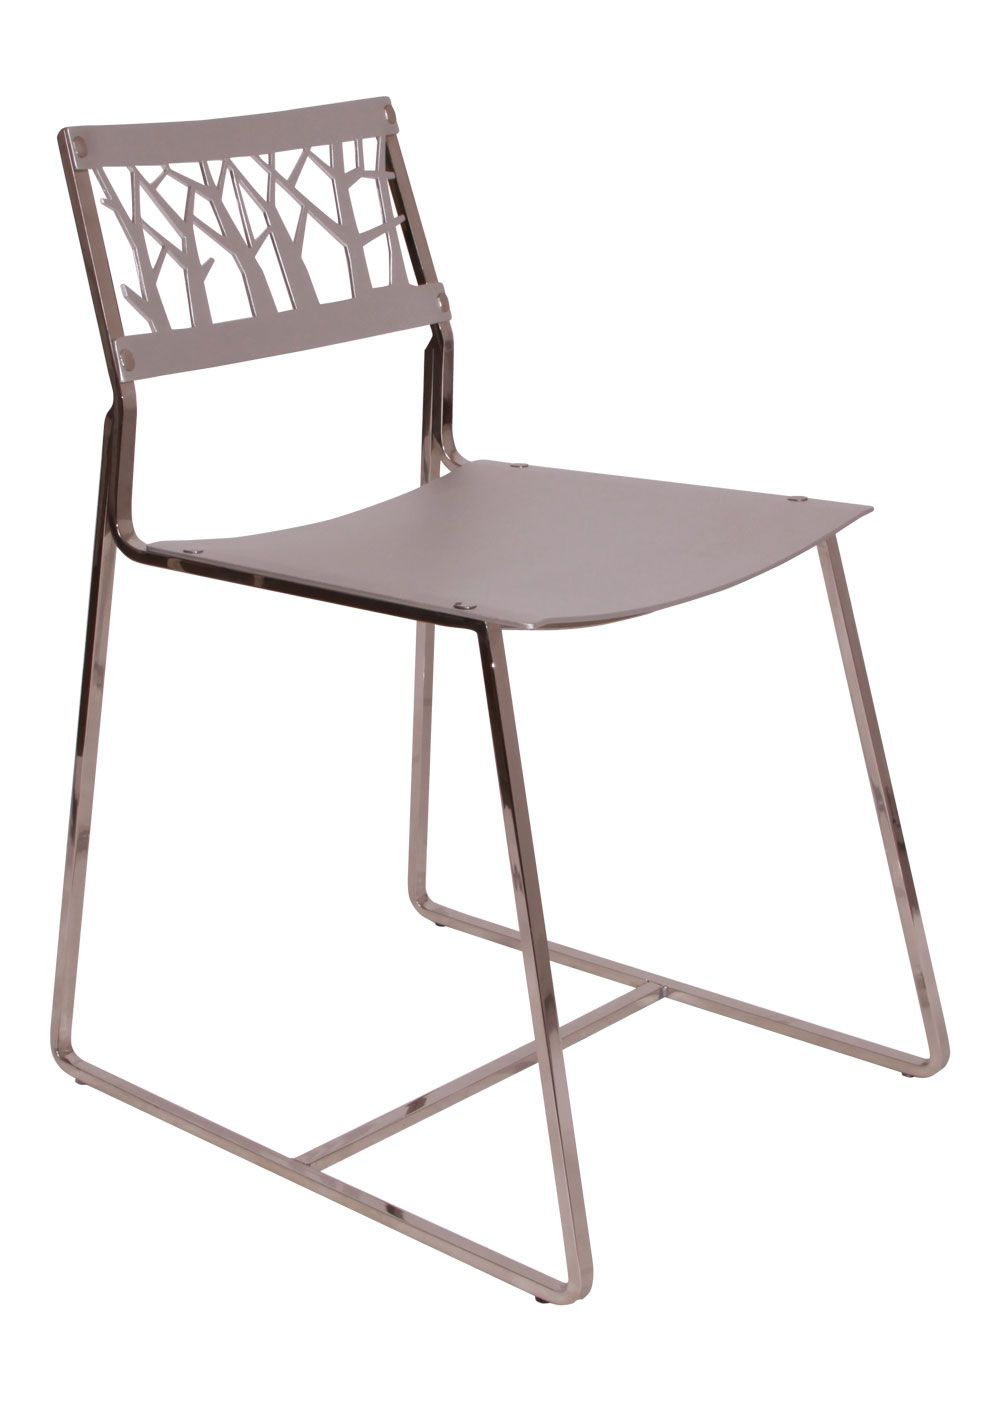 Charming Lars Aluminium Chair: Aluminium Seat U0026 Back, Stainless Steel Frame. Nice Design